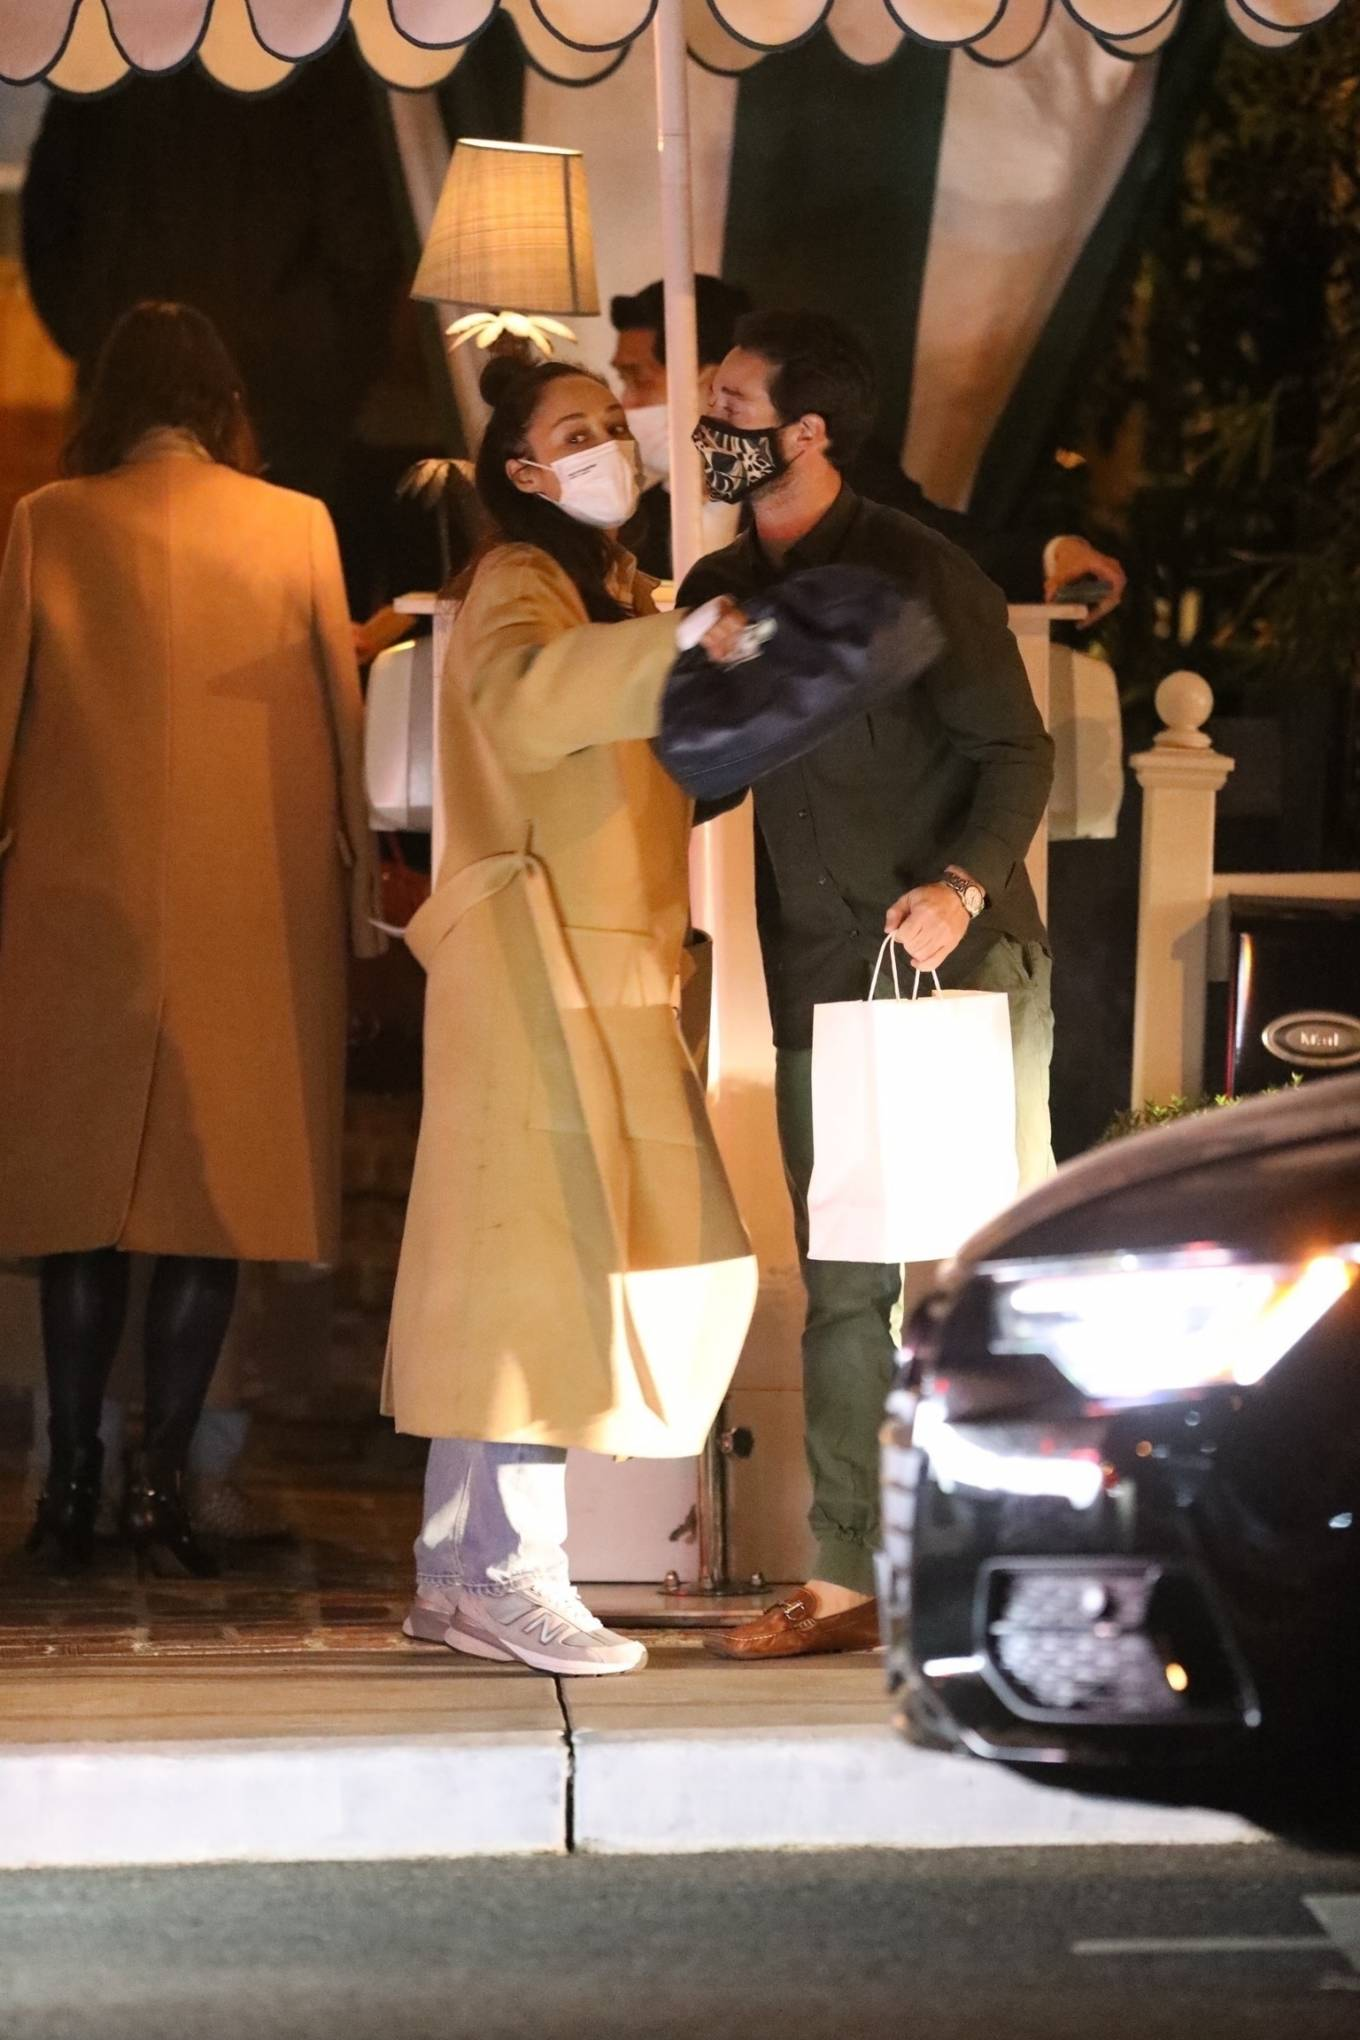 Cara Santana - Spotted with a mystery man at San Vicente Bungalows in West Hollywood